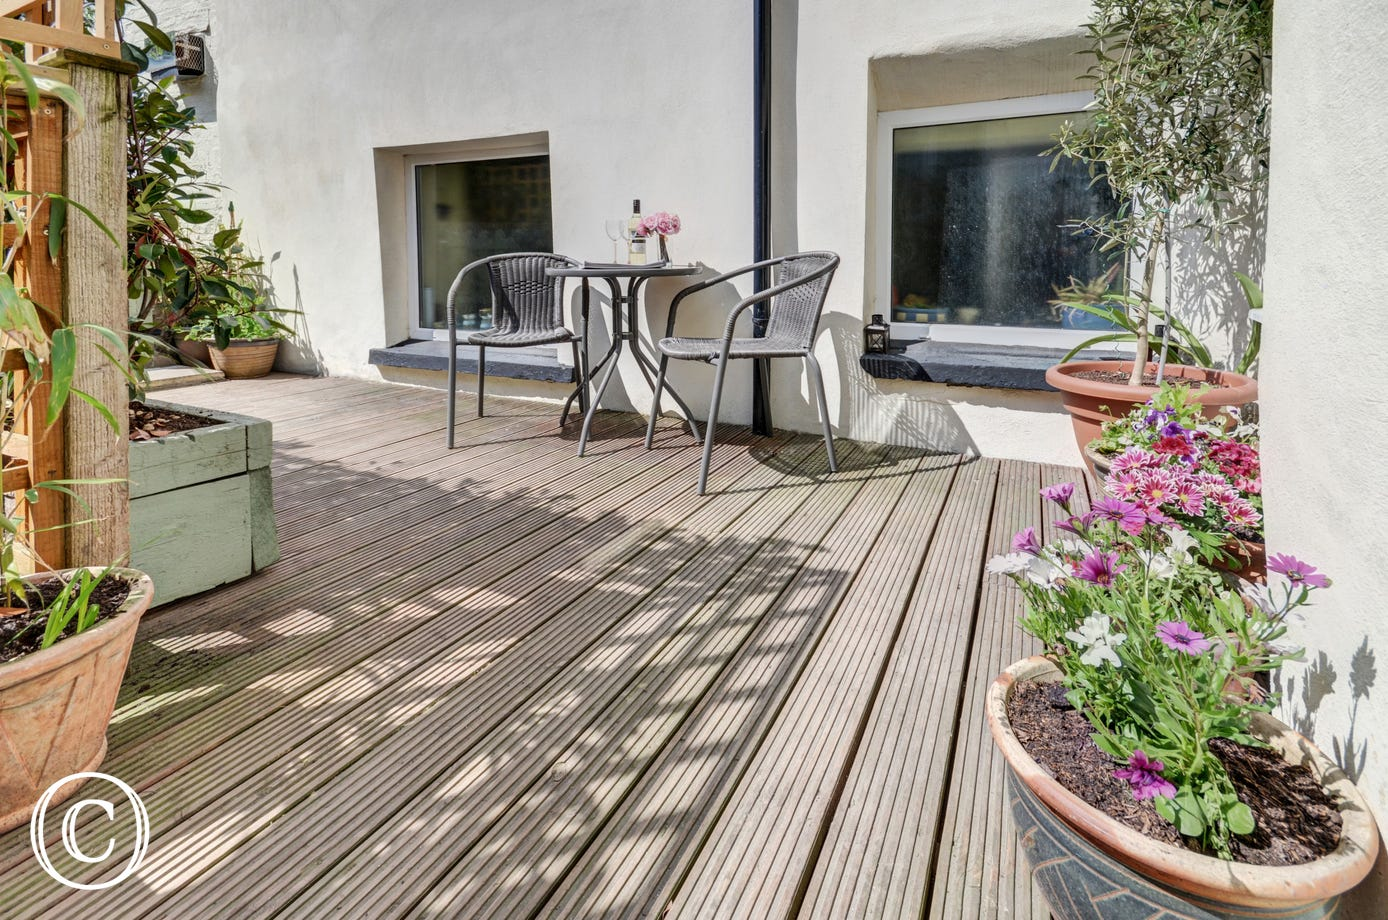 A well thought out fully enclosed terraced patio and garden offers a lovely space to enjoy breakfast or relax after a day exploring the area